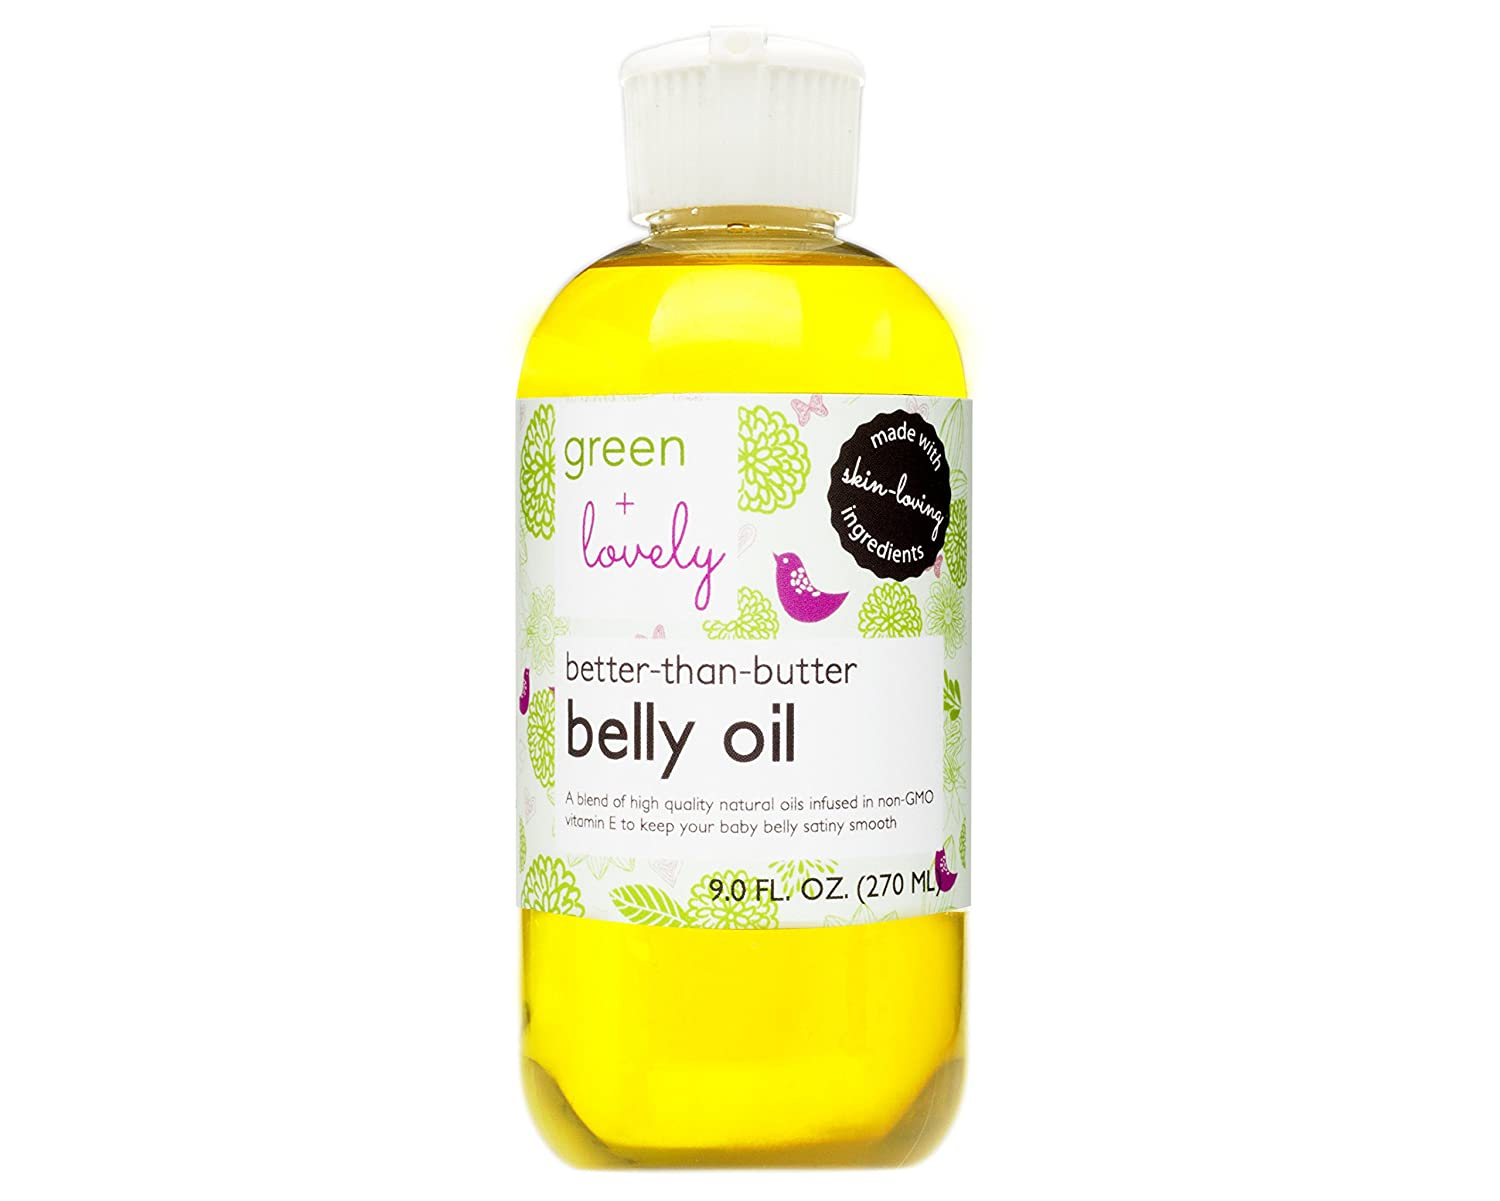 Better than Butter Belly Oil by Green + Lovely - Tangerine Orange Scent, 9 fl oz. Pregnancy Aromatherapy Oil enhanced with Vitamin E to prevent Stretch Marks and Skin Elasticity